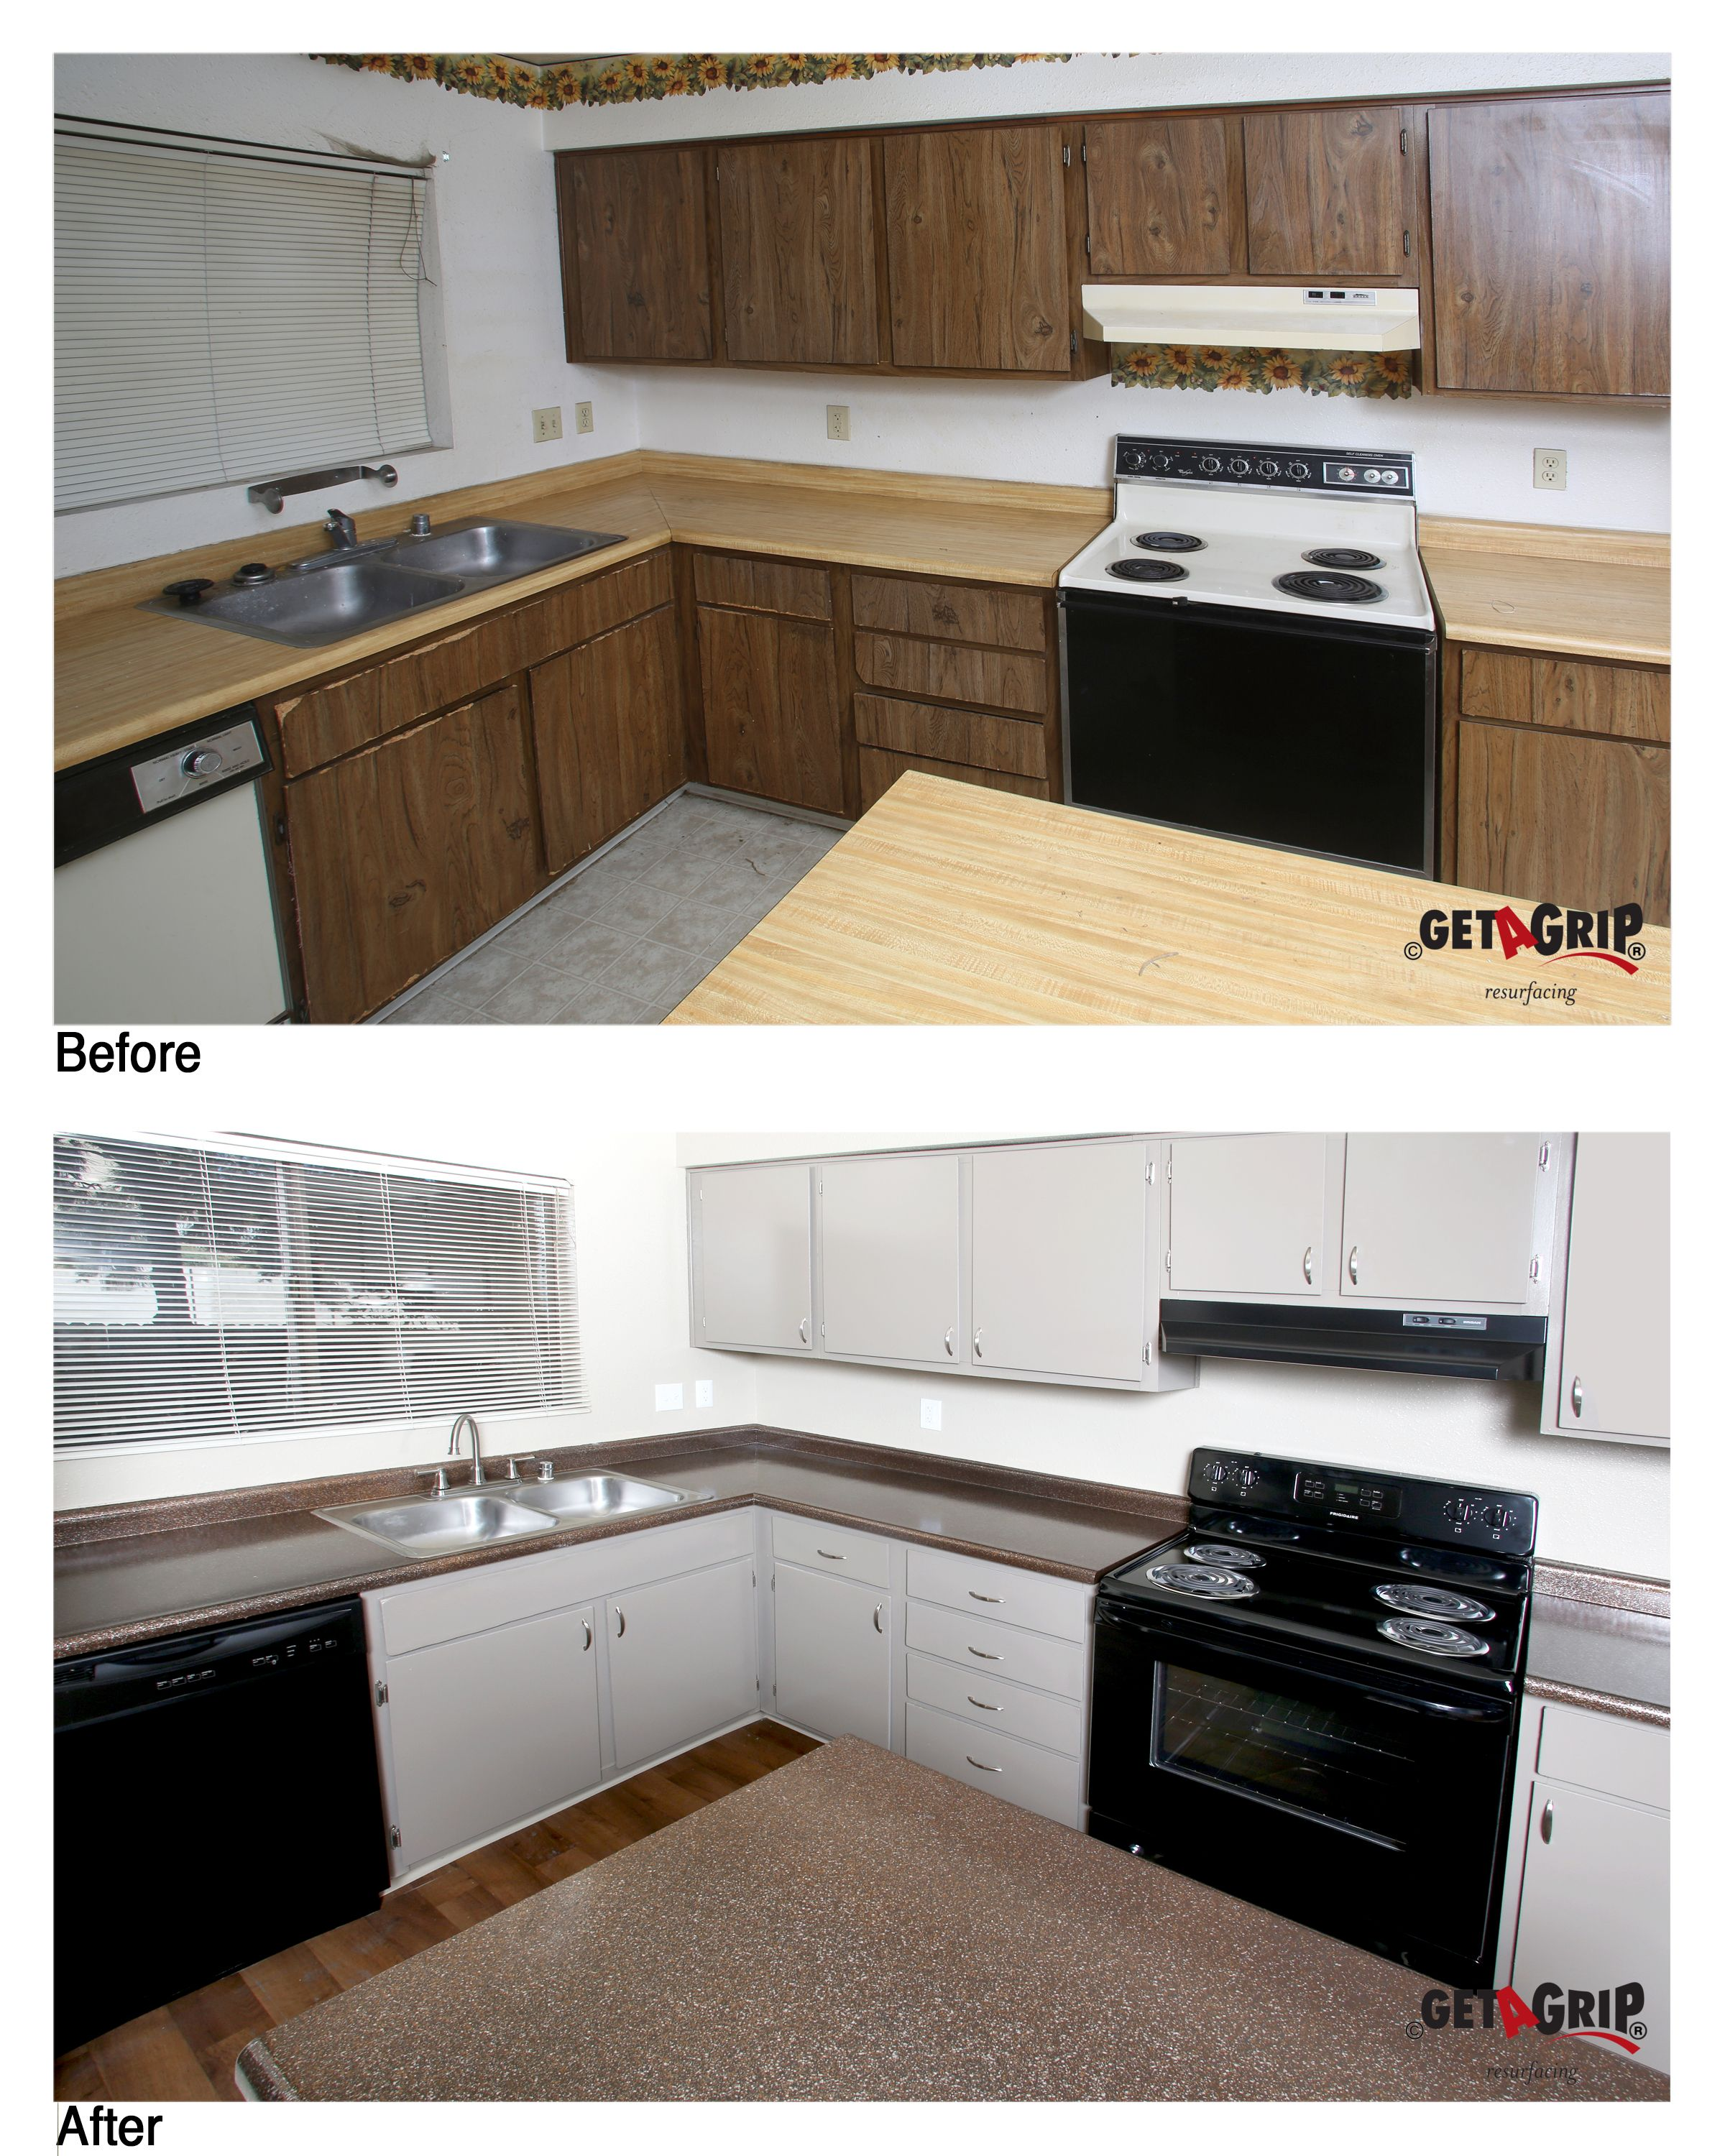 Resurfaced Countertops And Cabinets